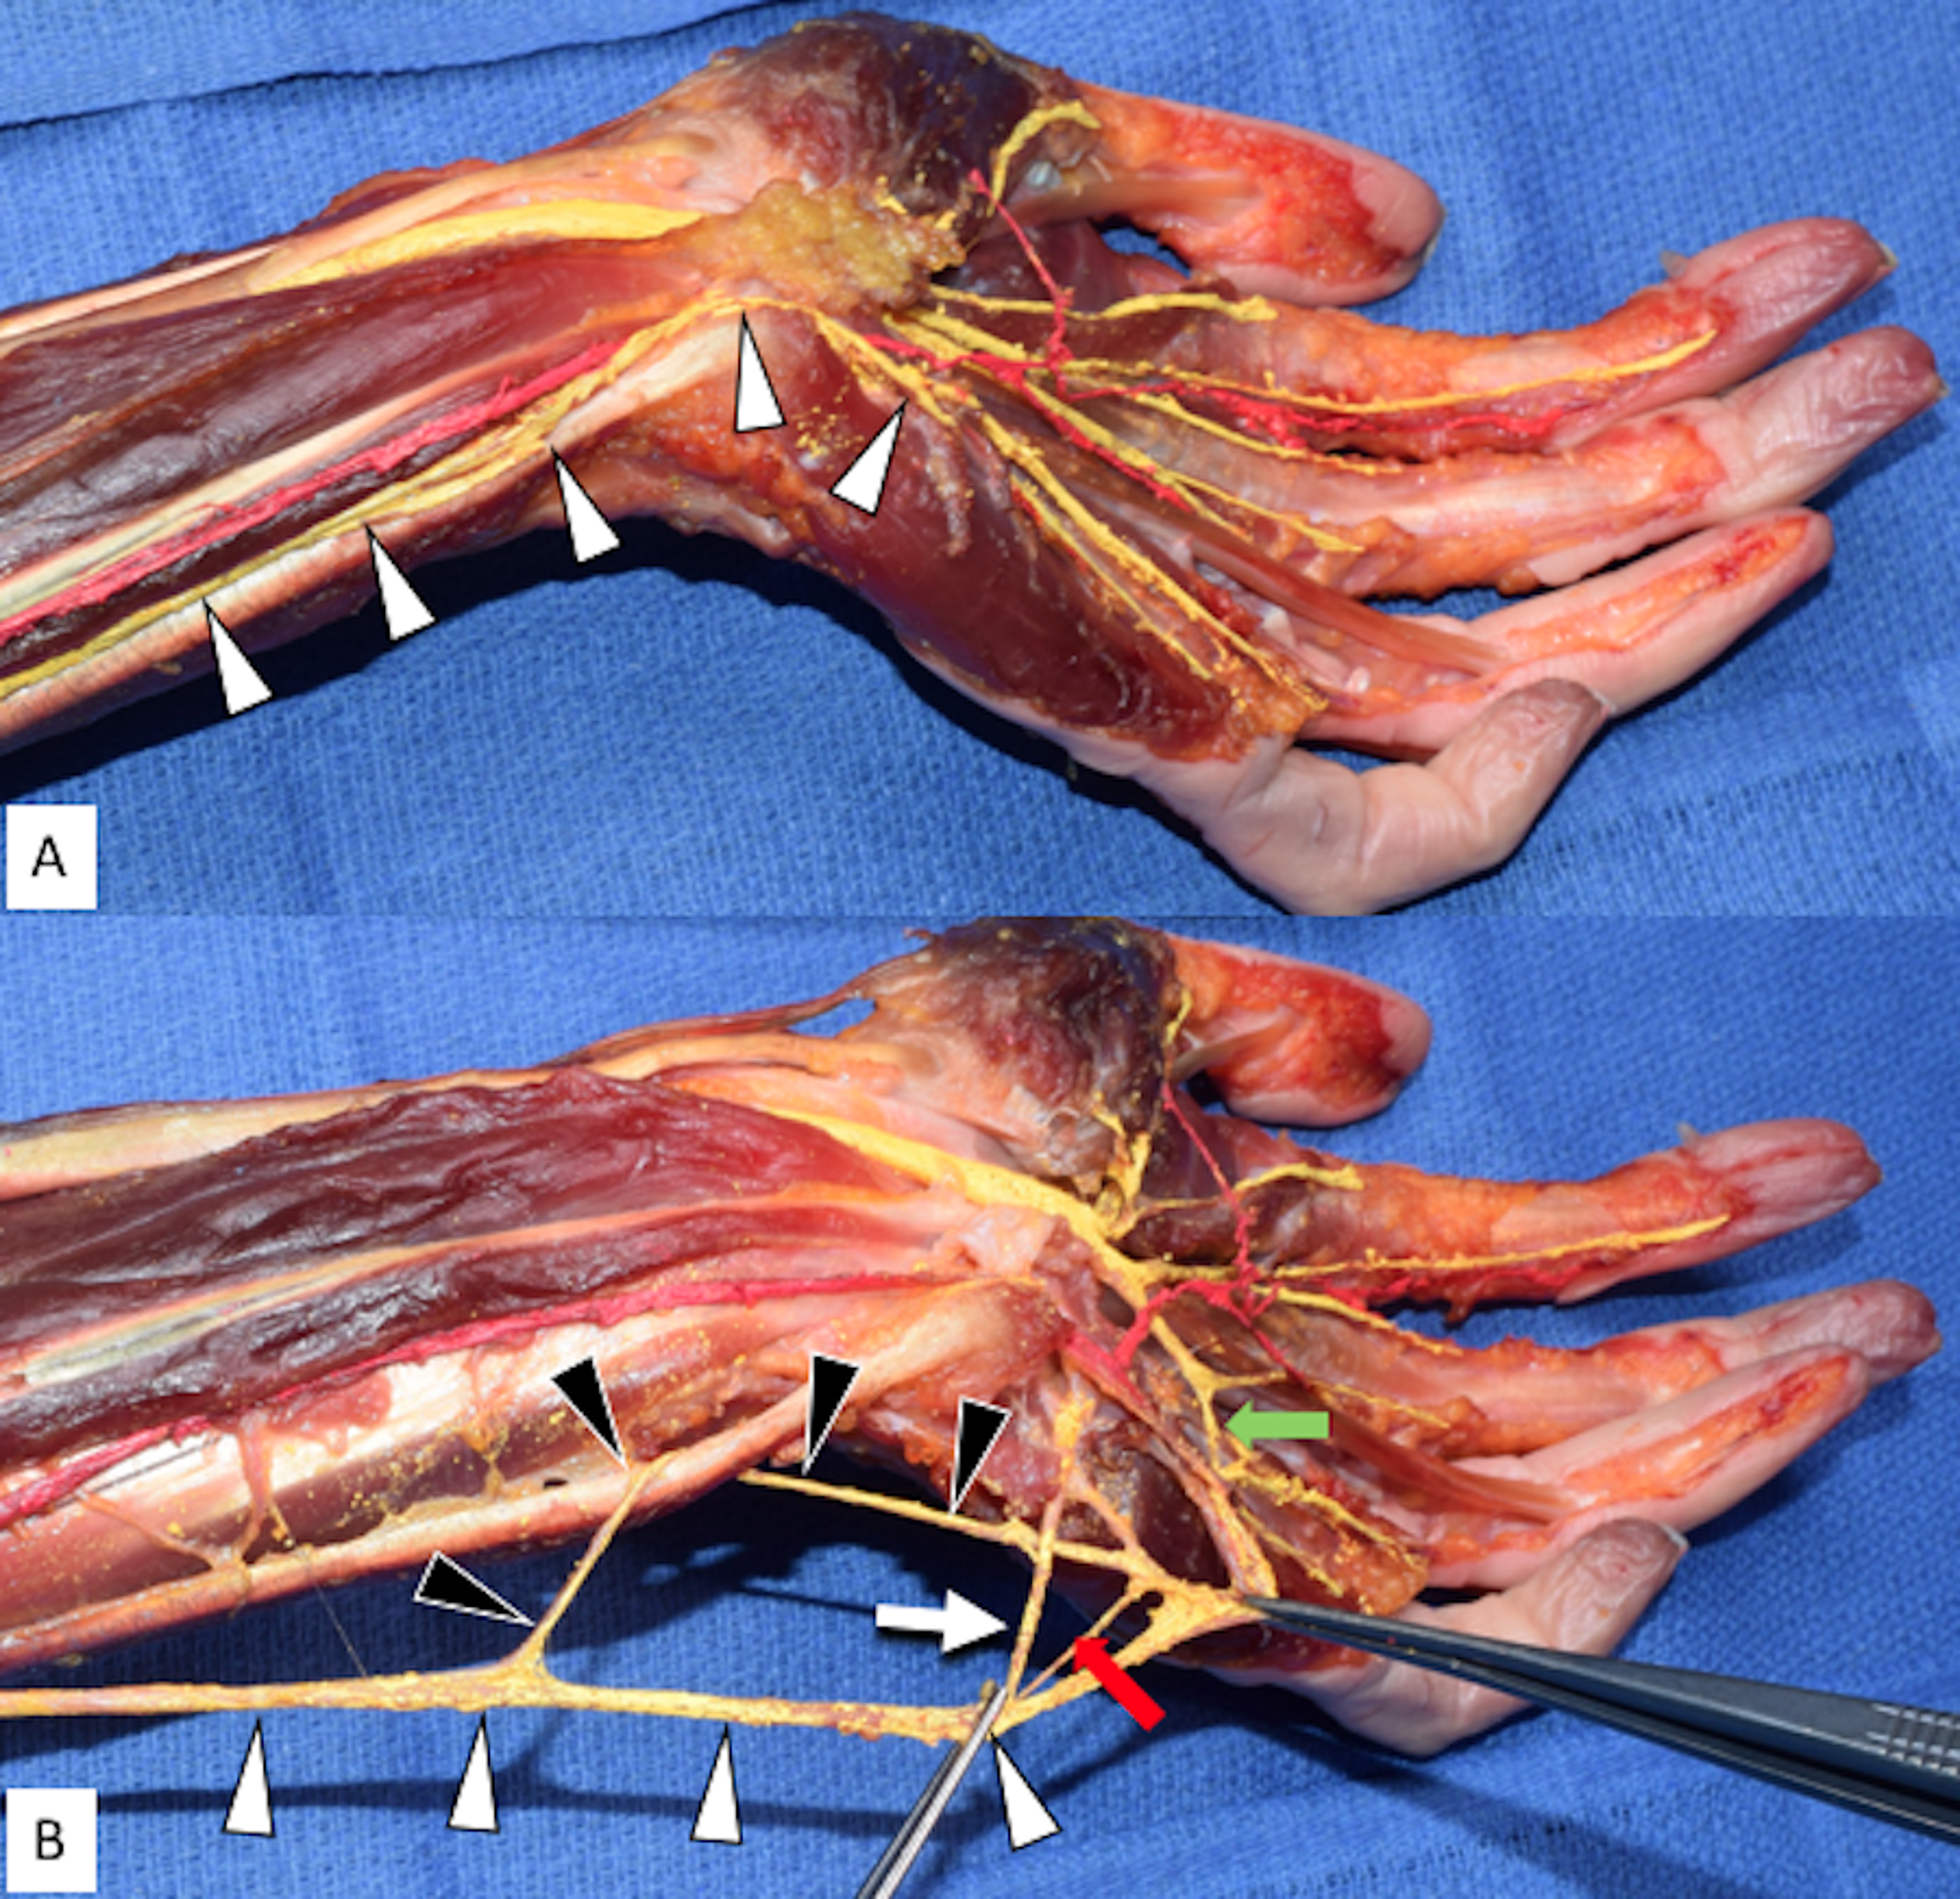 Cureus Variant Distal Ulnar Nerve Loop A Previously Undescribed